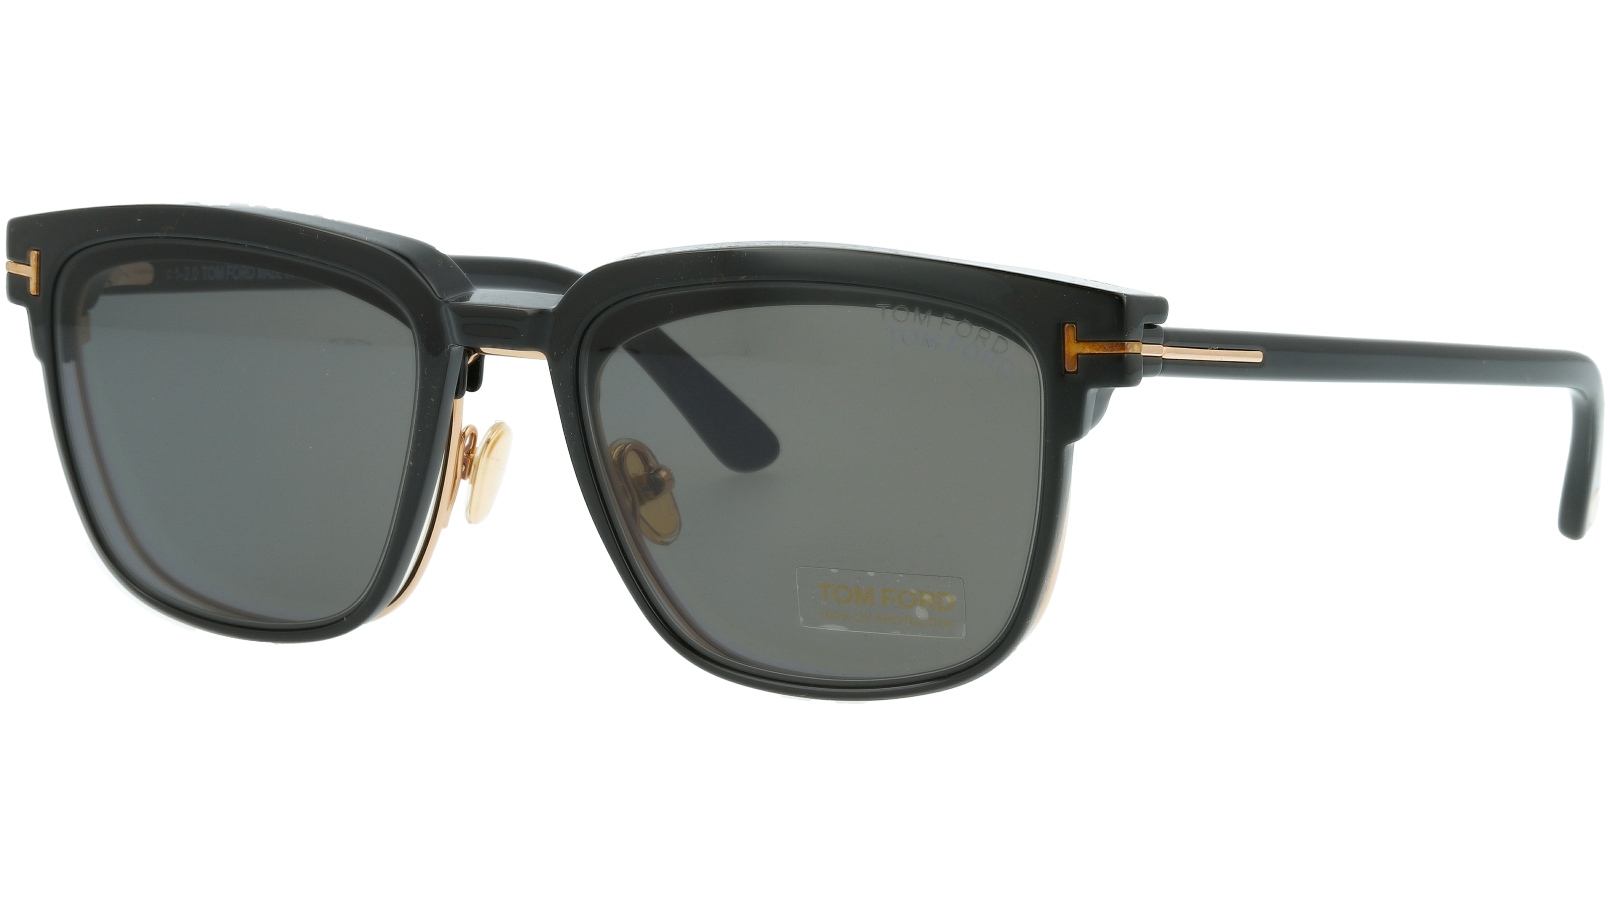 TOM FORD FT5683-B 001 54 SHINY Sunglasses